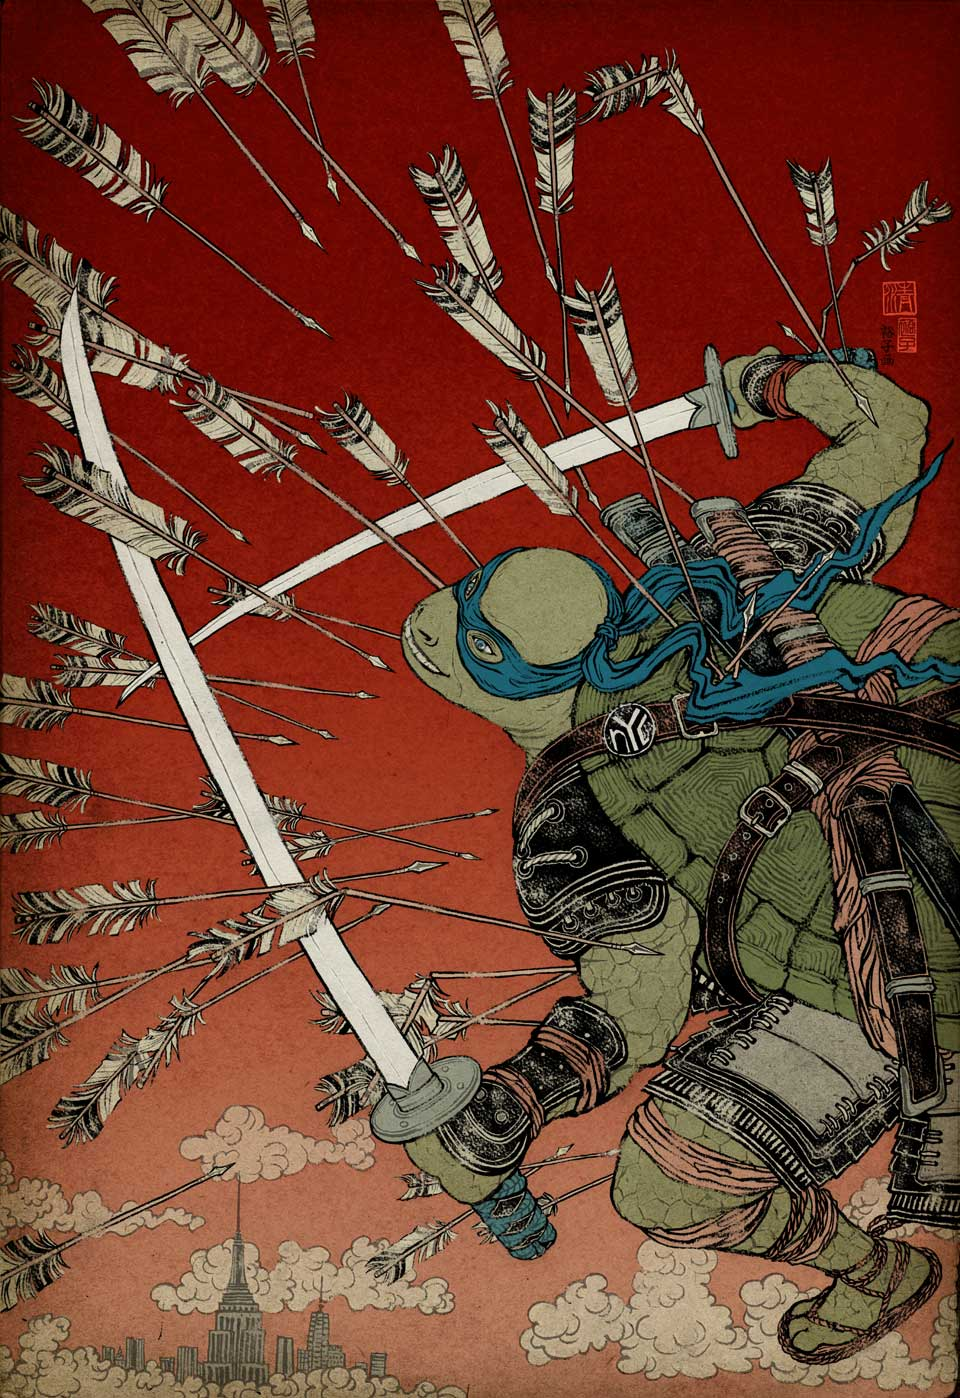 Yuko Shimizu - Teenage Mutant Ninja Turtles for Paramount Pictures -